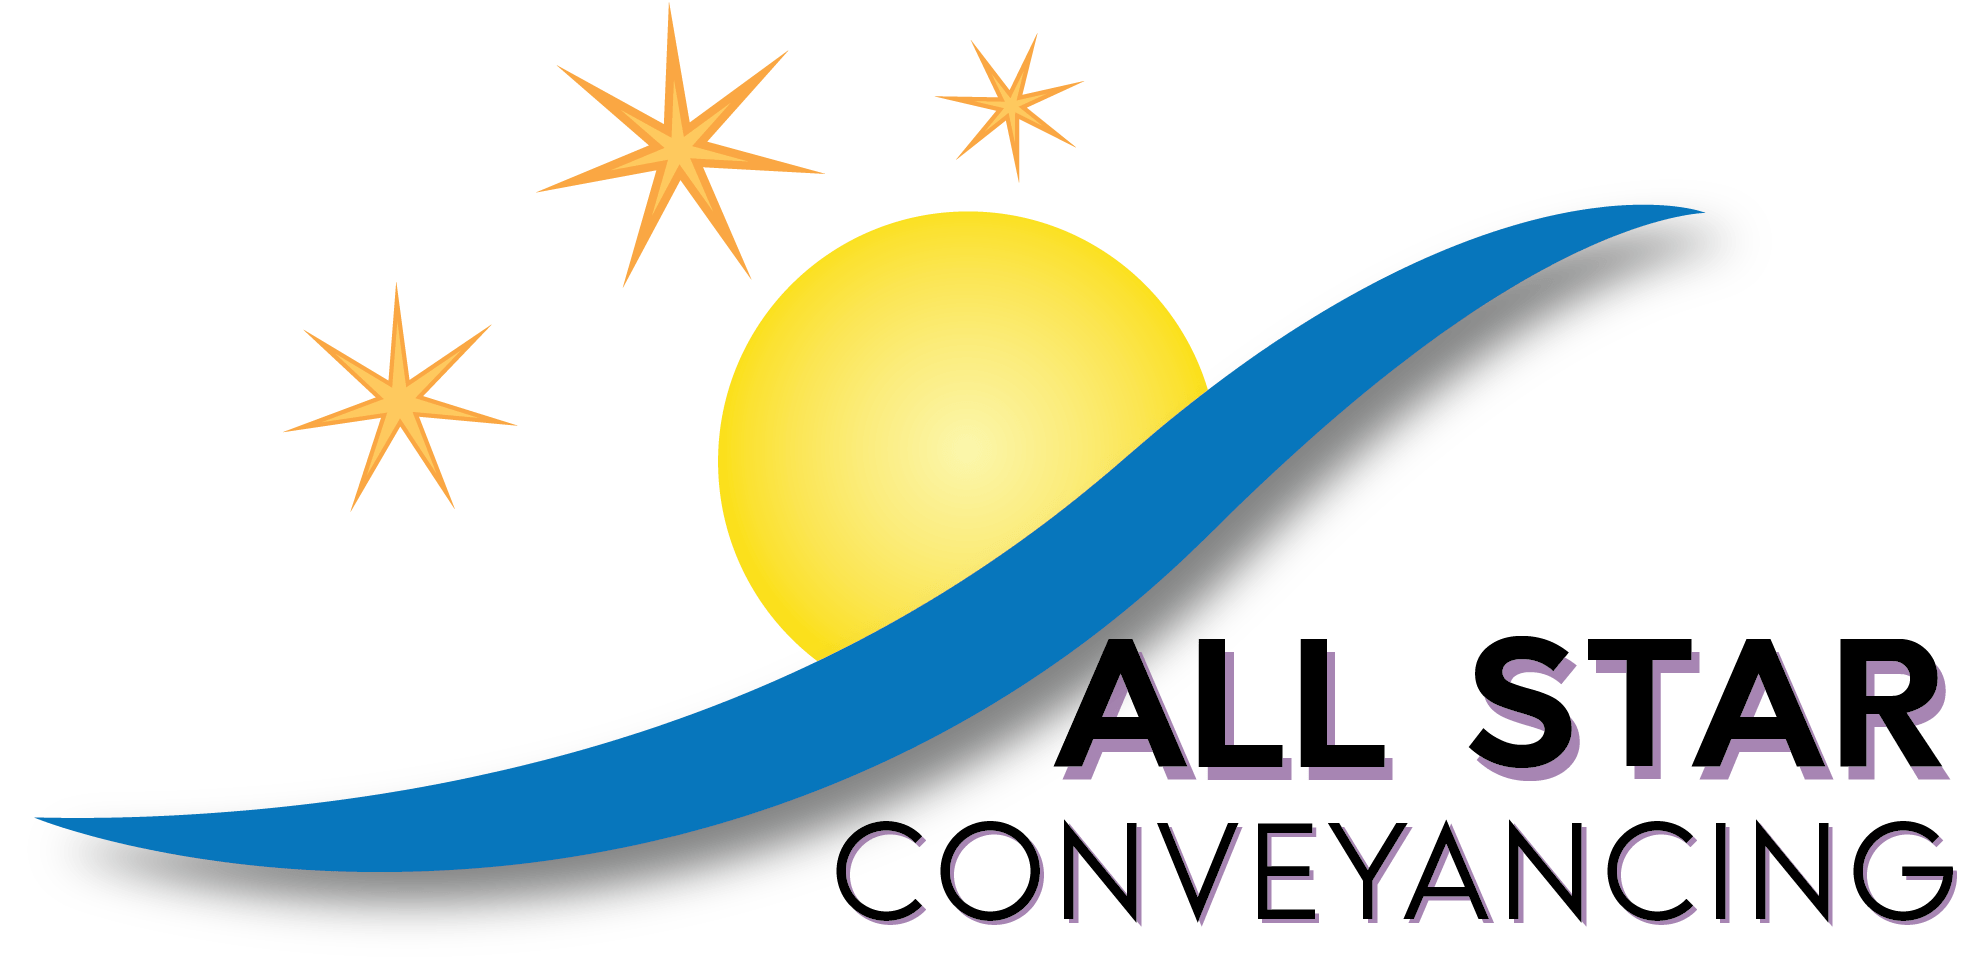 All Star Conveyancing